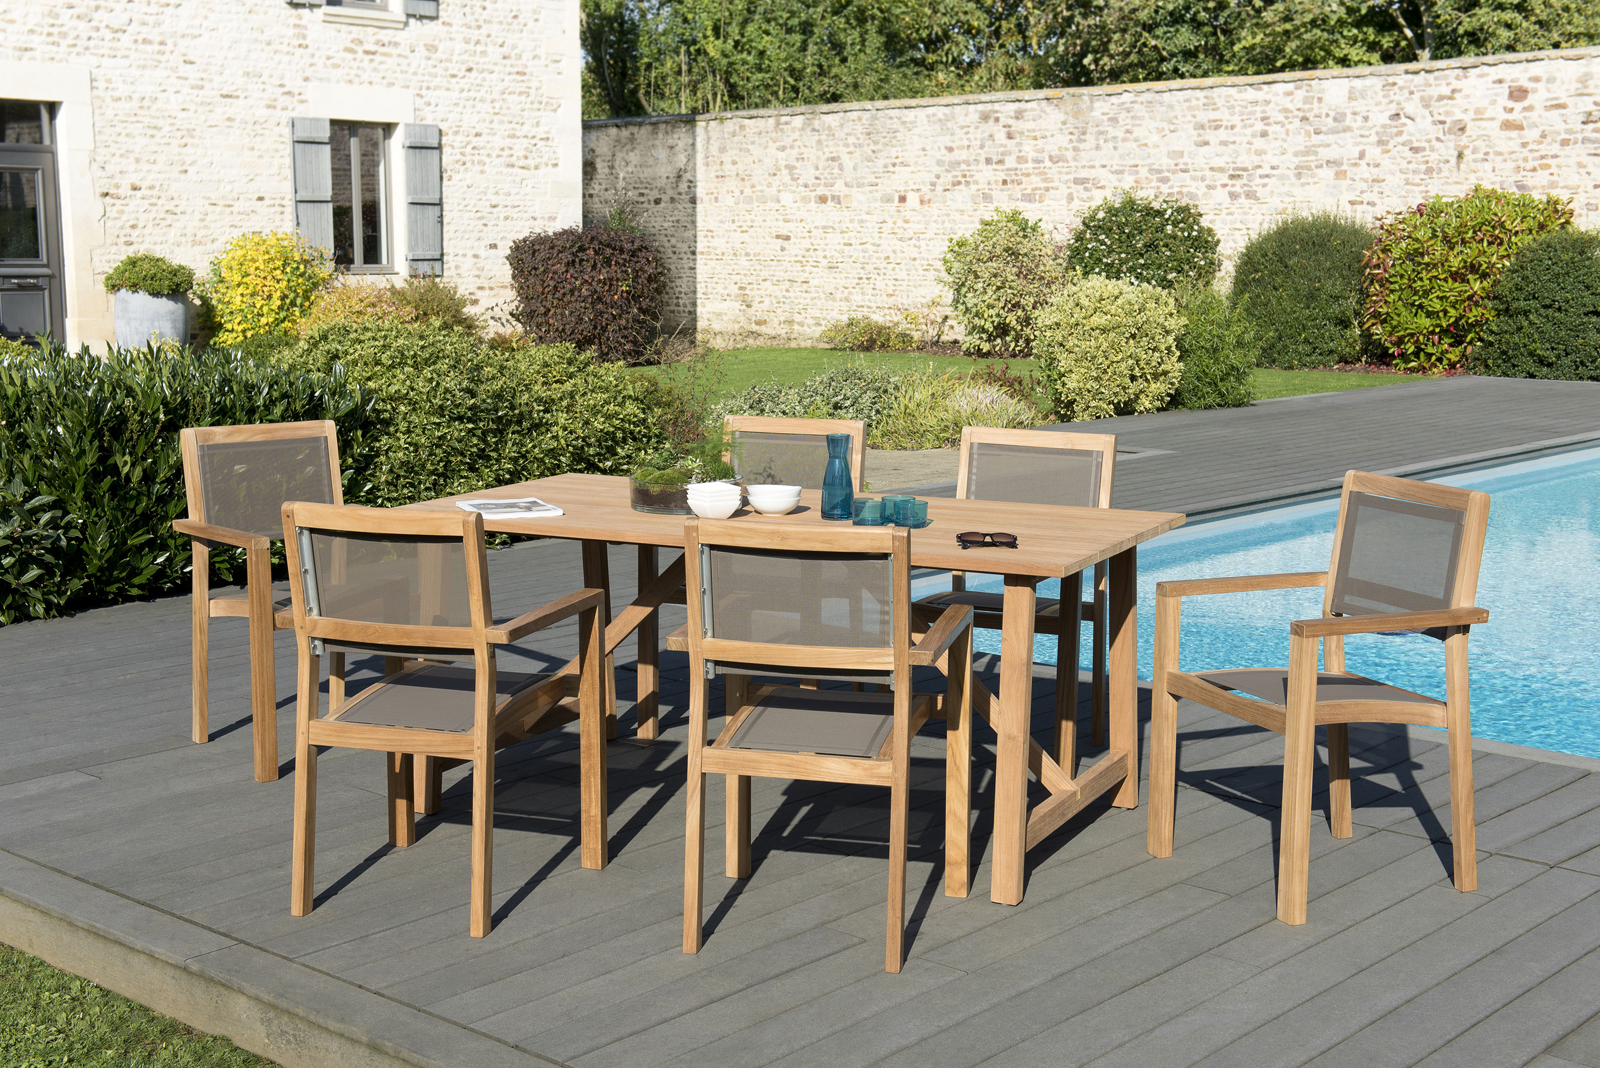 Salon de Jardin Teck Table 180x90 + 6 fauteuils empilables BERGEN ...